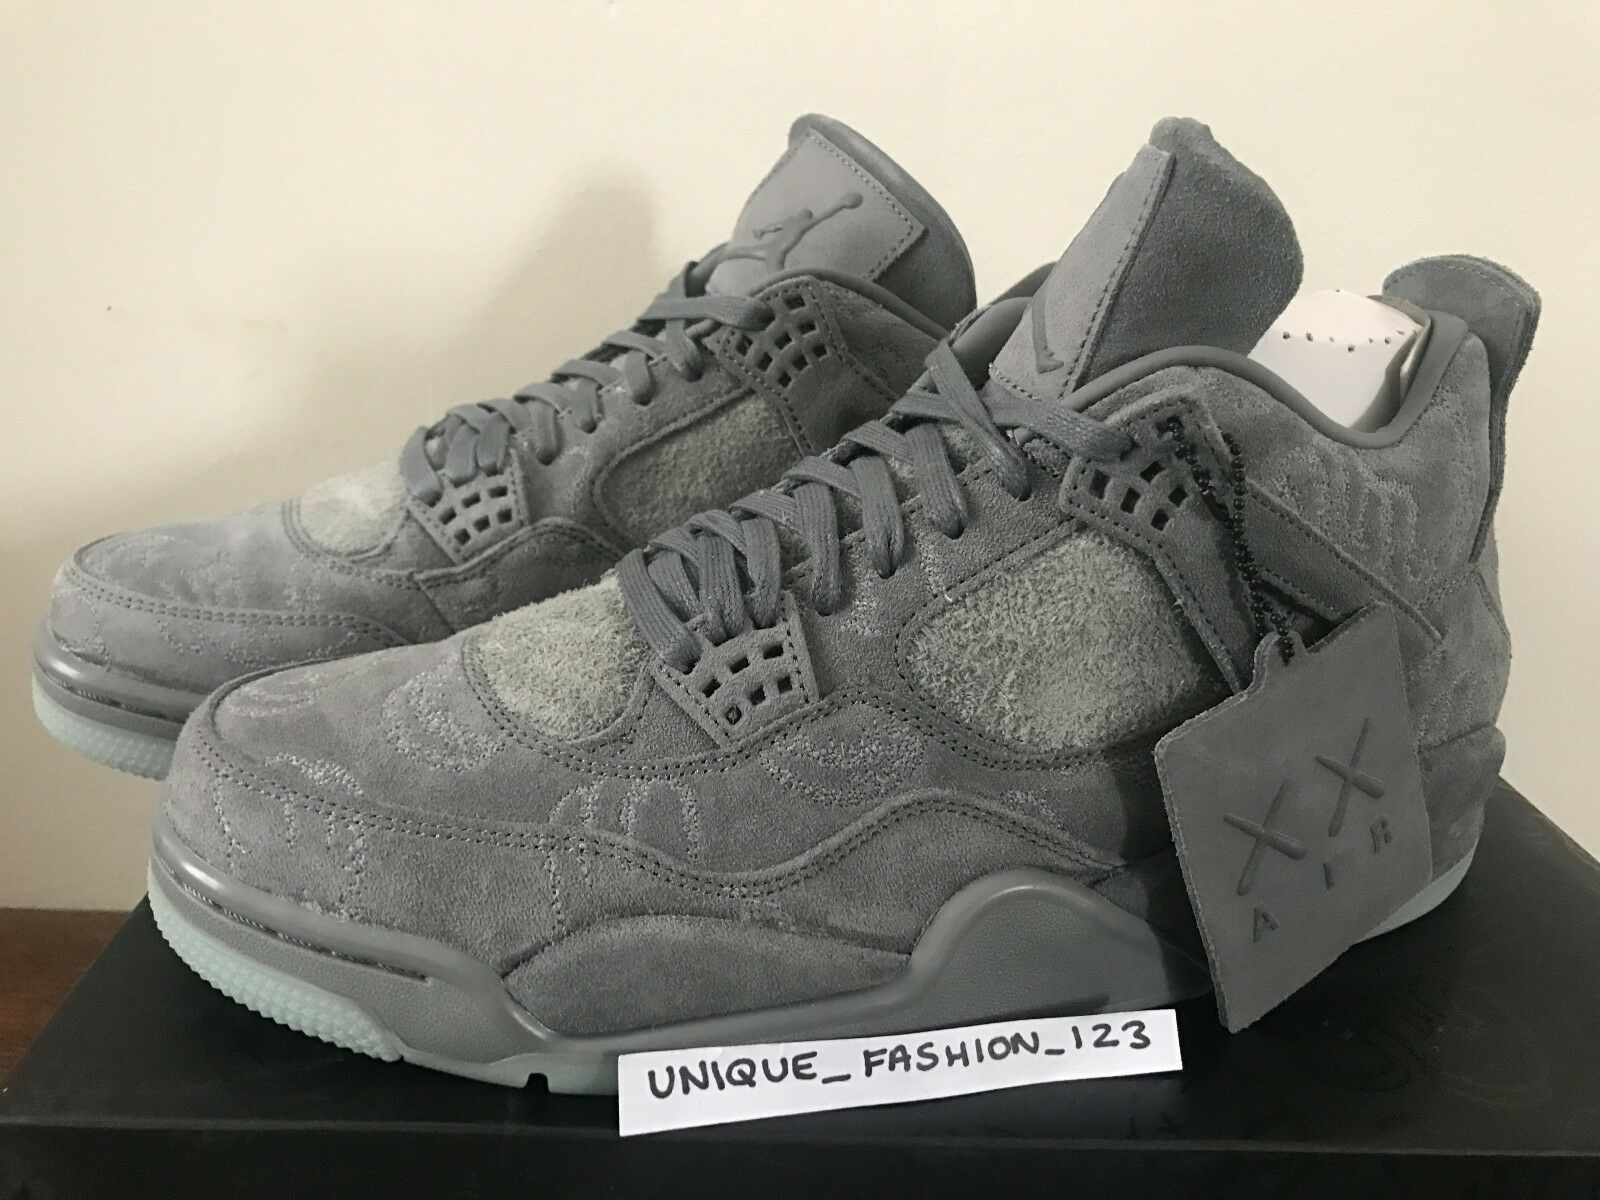 NIKE AIR JORDAN RETRO 4 IV KAWS COMPANION AJ4 COOL GREY